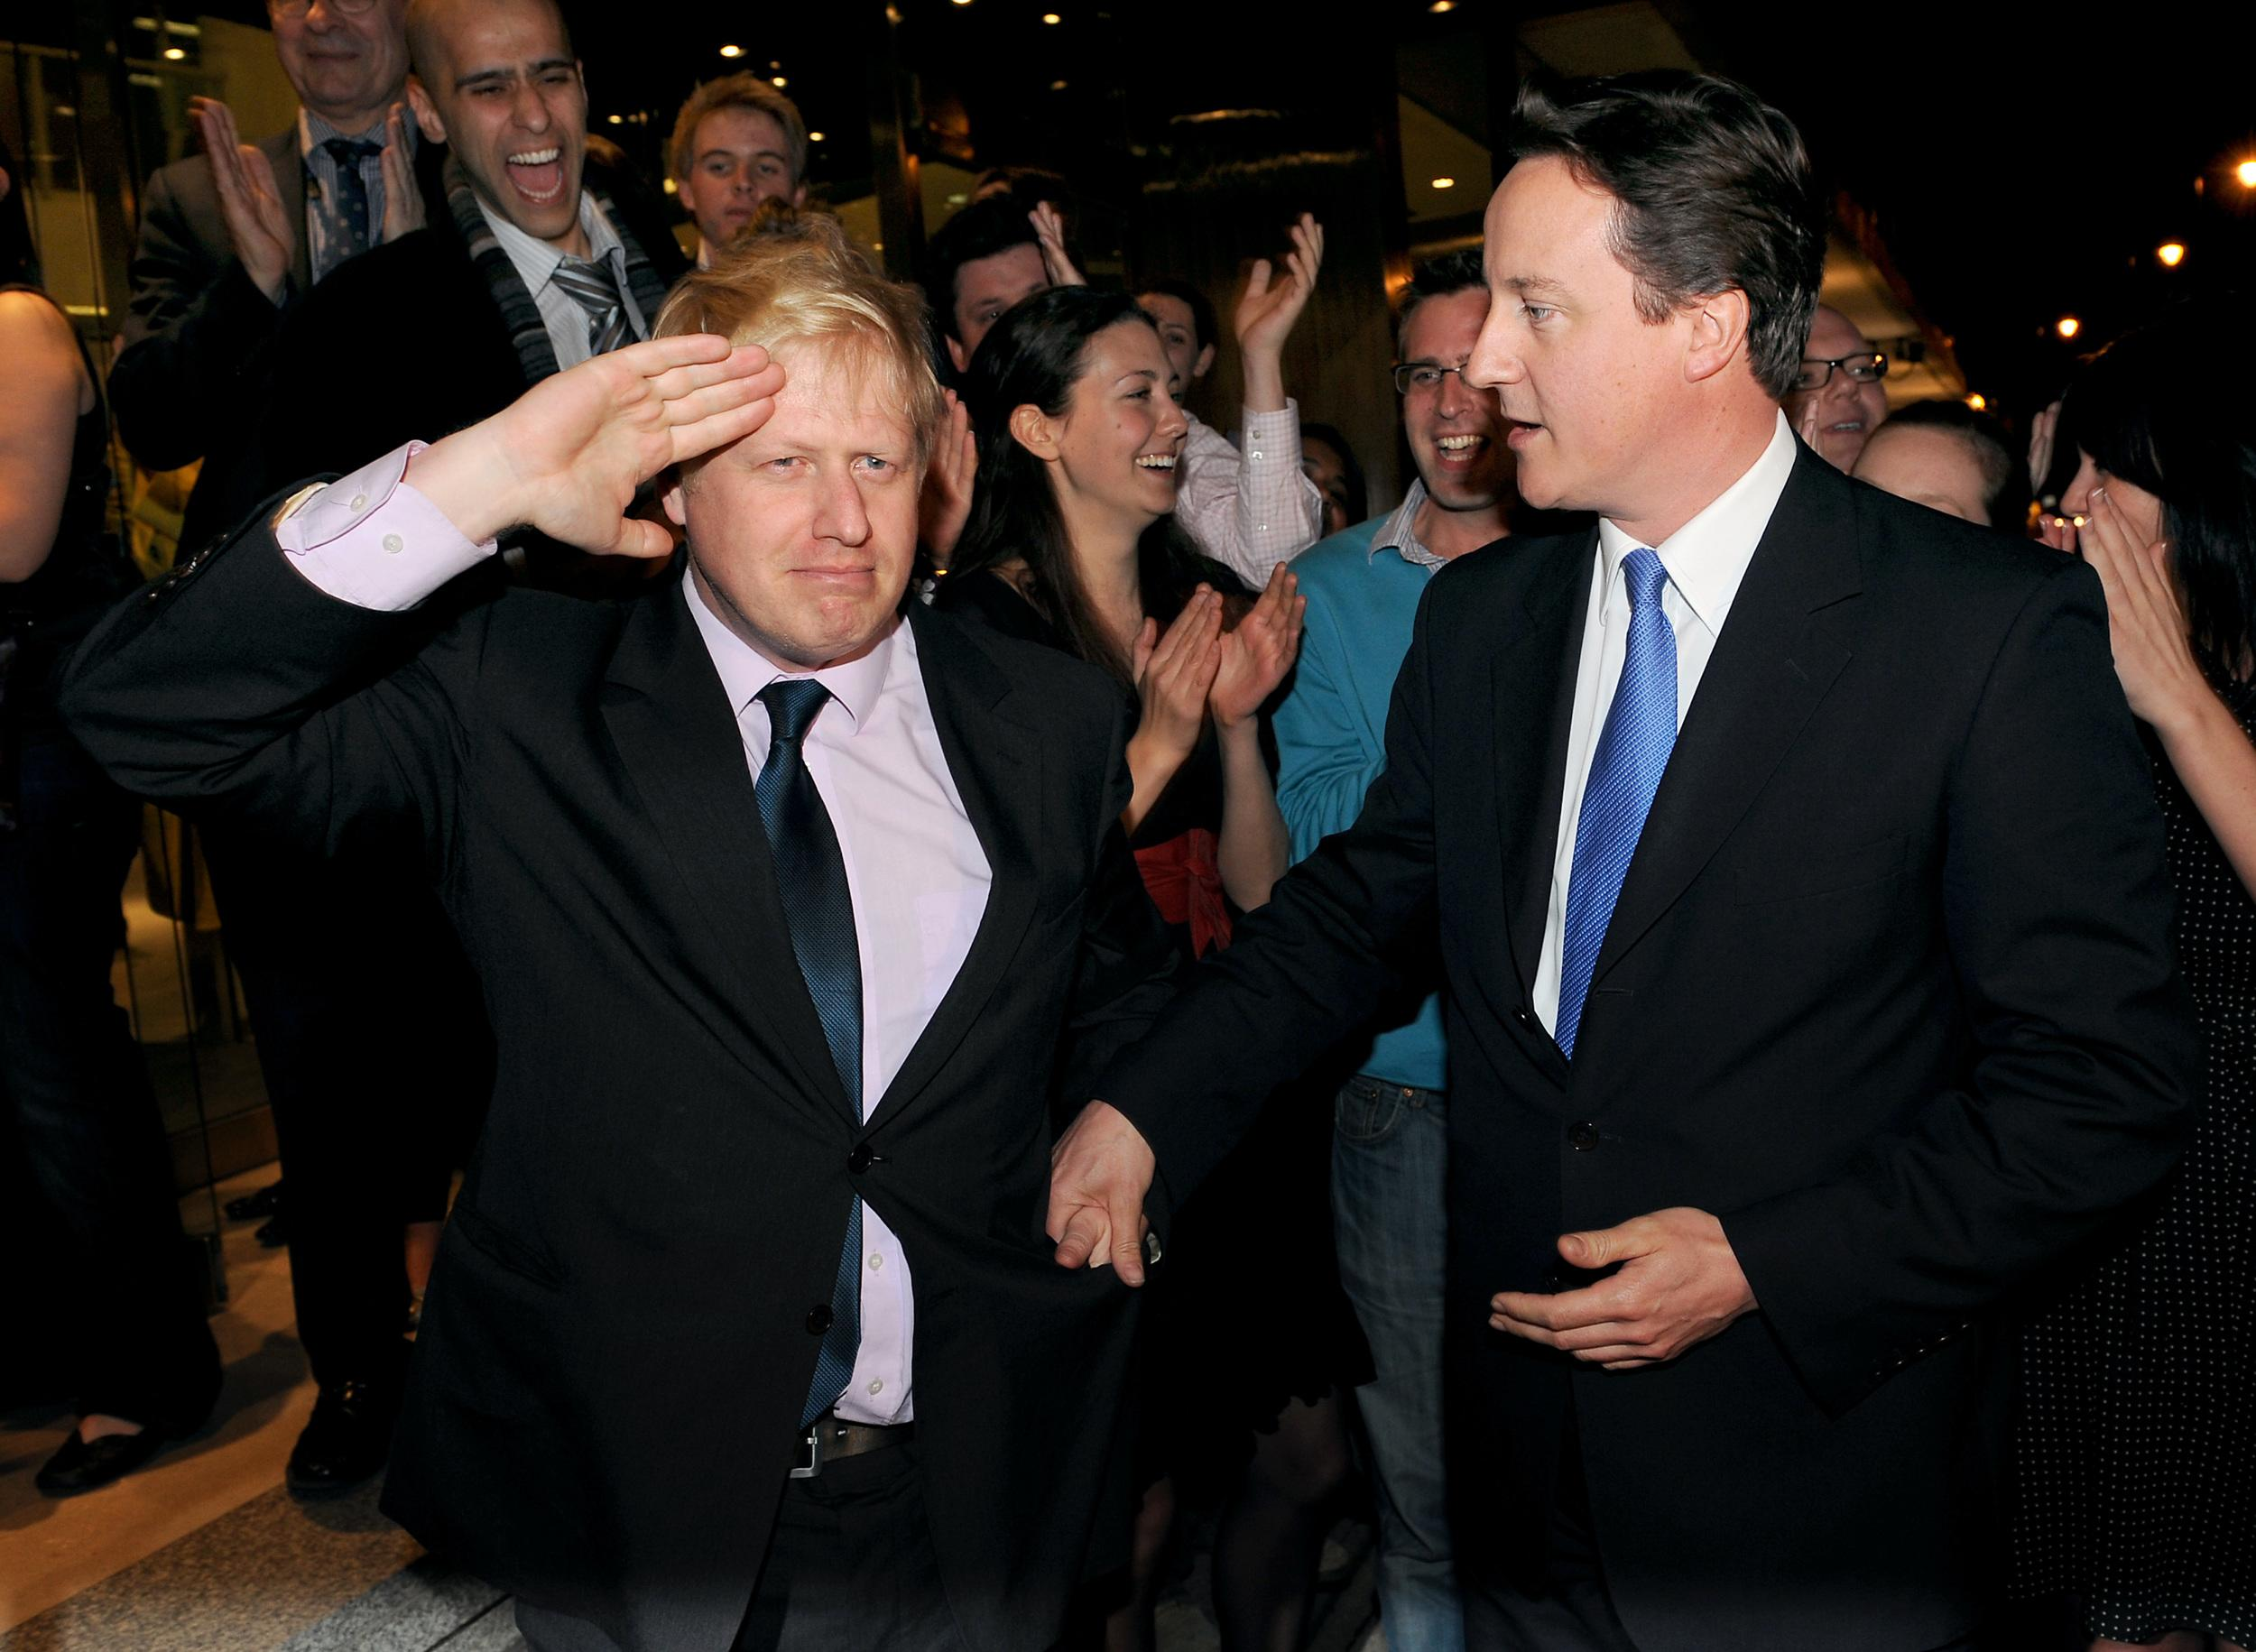 Conservative Party leader David Cameron congratulates Boris Johnson on becoming London Mayor at Tory HQ in central London.